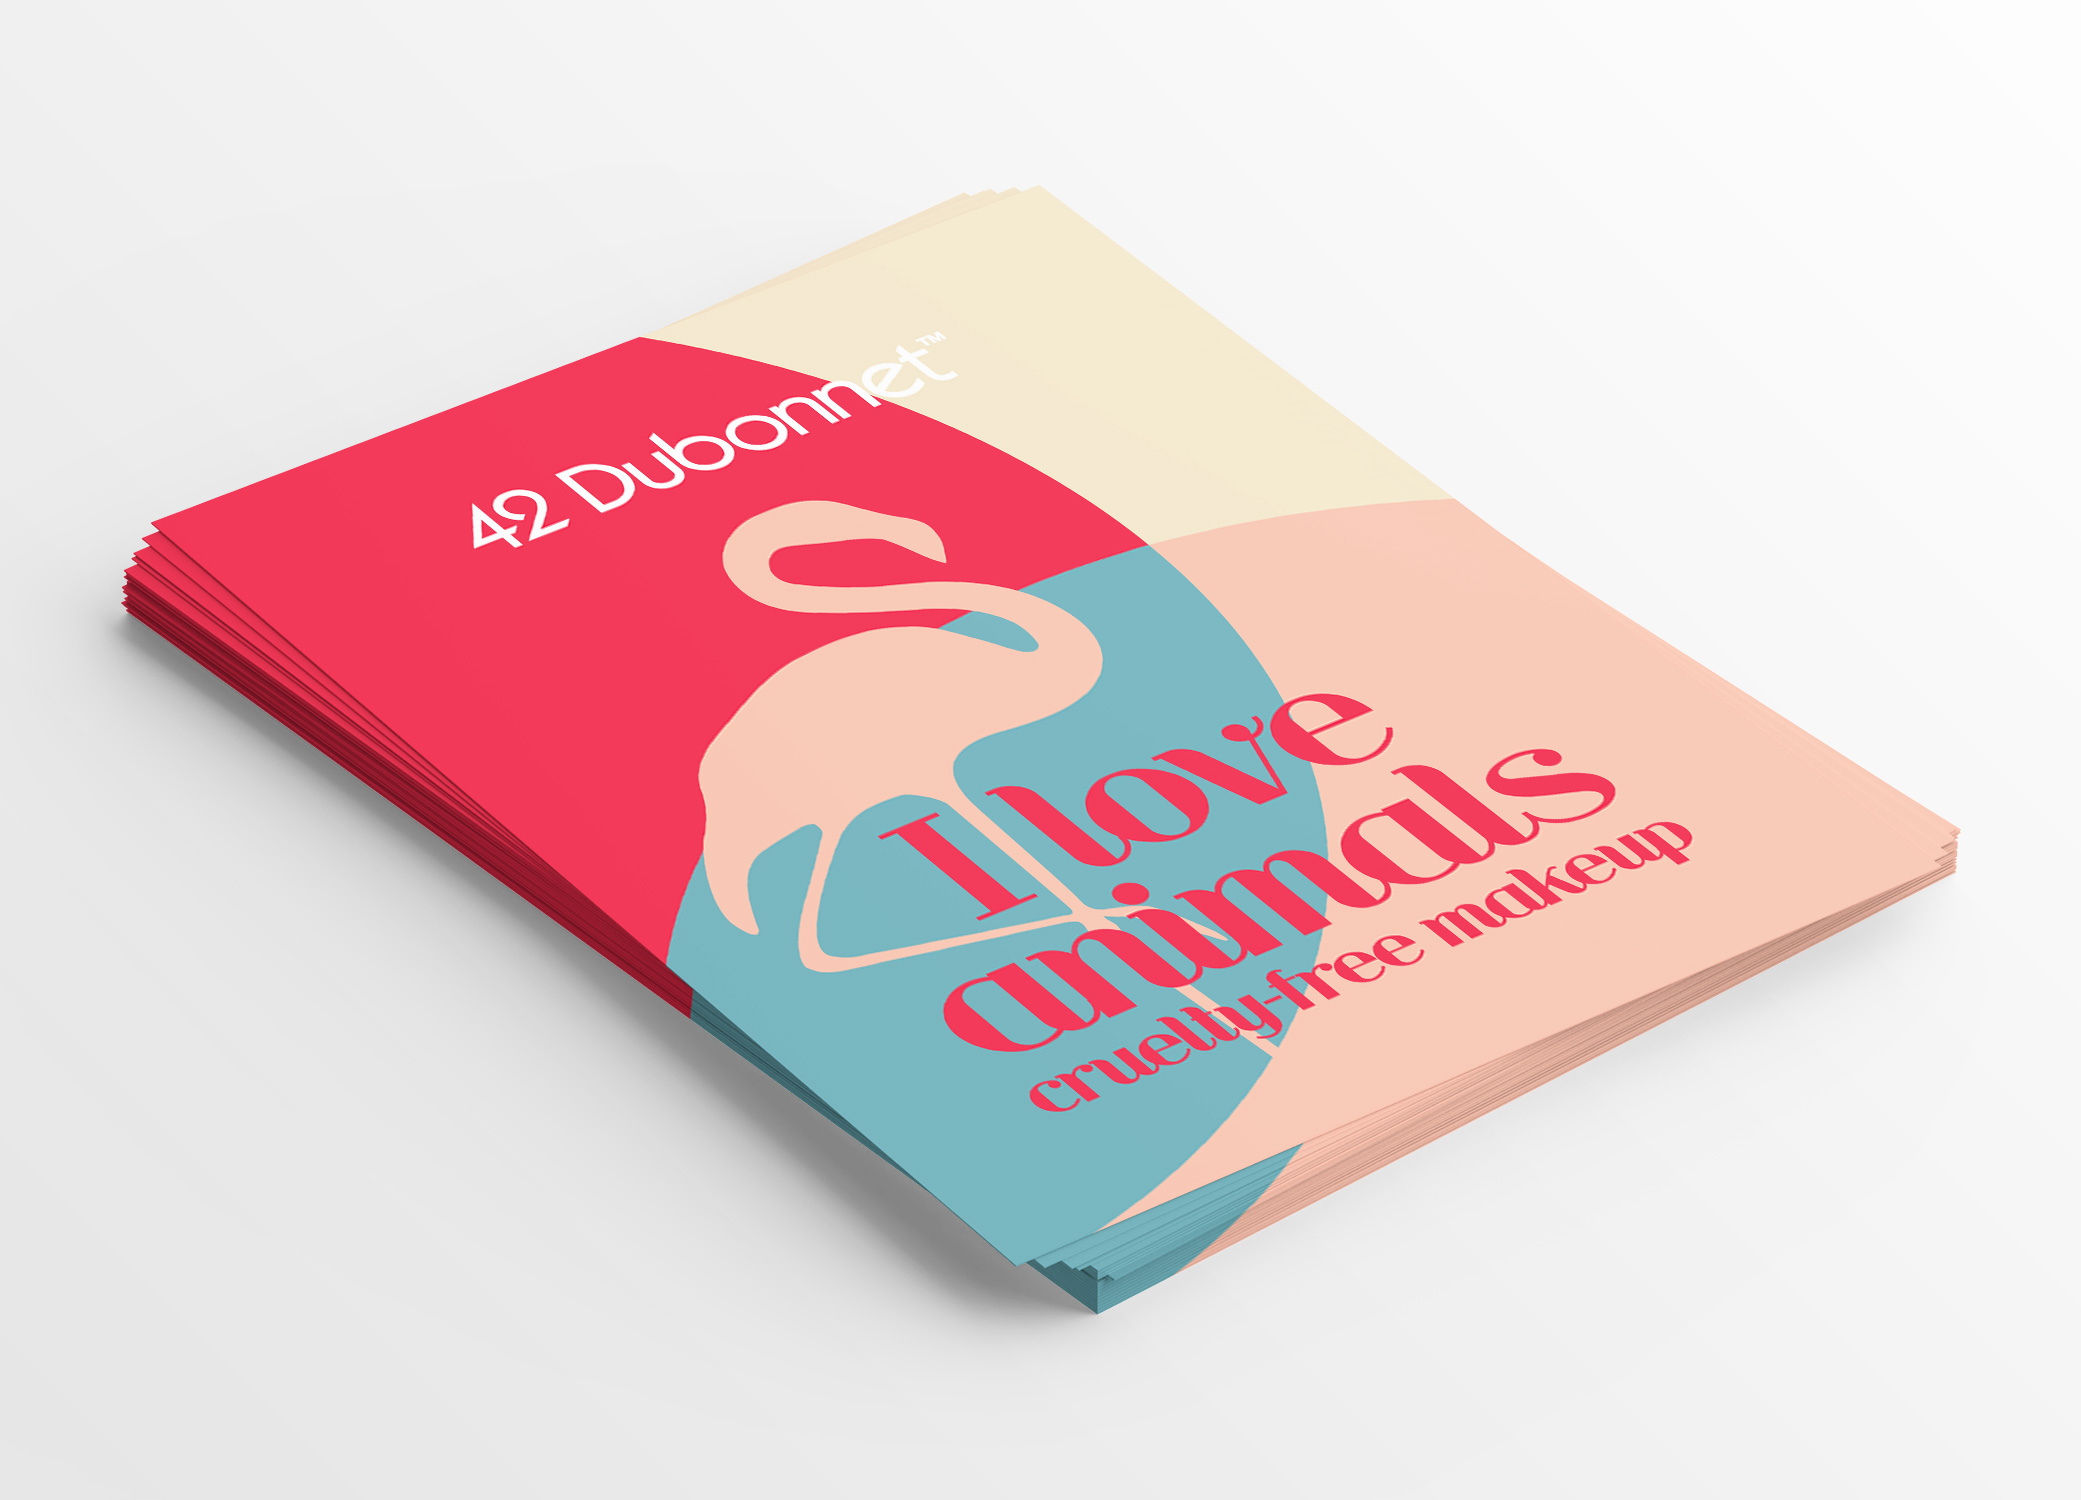 """42 Dubonnet flyer promoting the brand's mission towards sustainability with an image of a flamingo and """"I love animals, cruelty-free makeup"""" advertisement."""